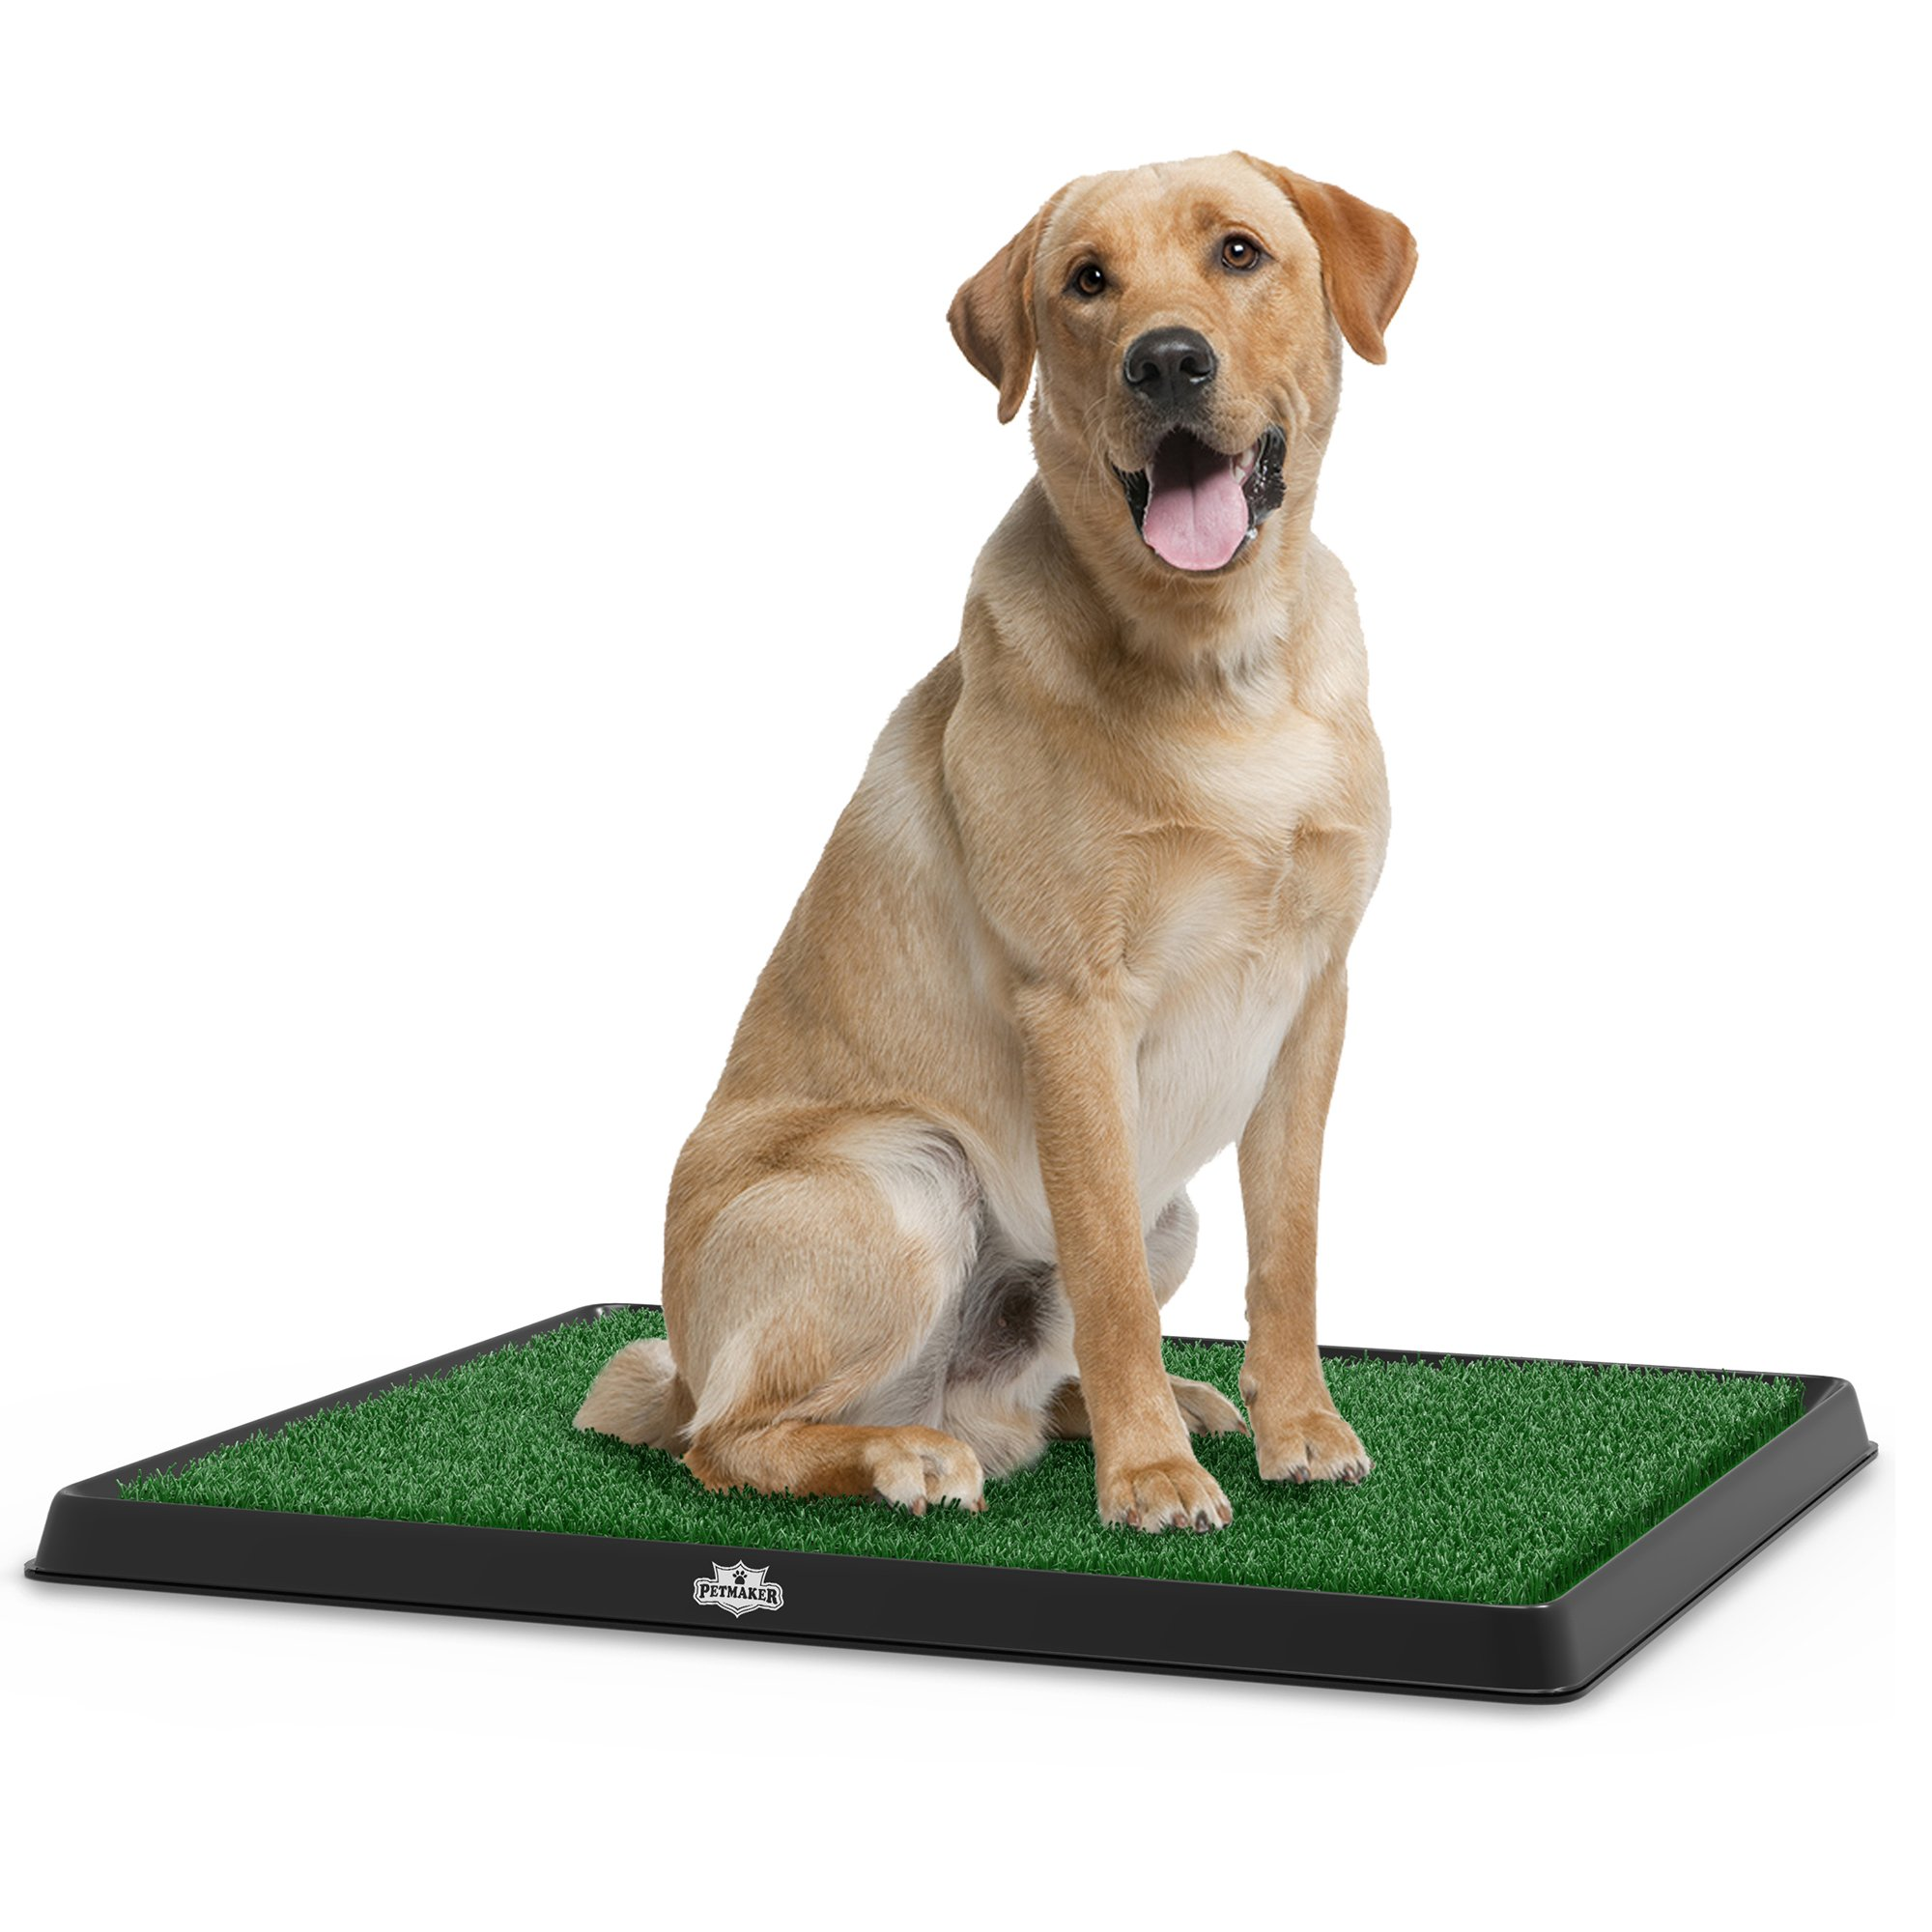 PETMAKER Artificial Grass Bathroom Mat for Puppies and Small Pets- Portable Potty Trainer for Indoor and Outdoor Use Puppy Essentials, 20'' x 25''